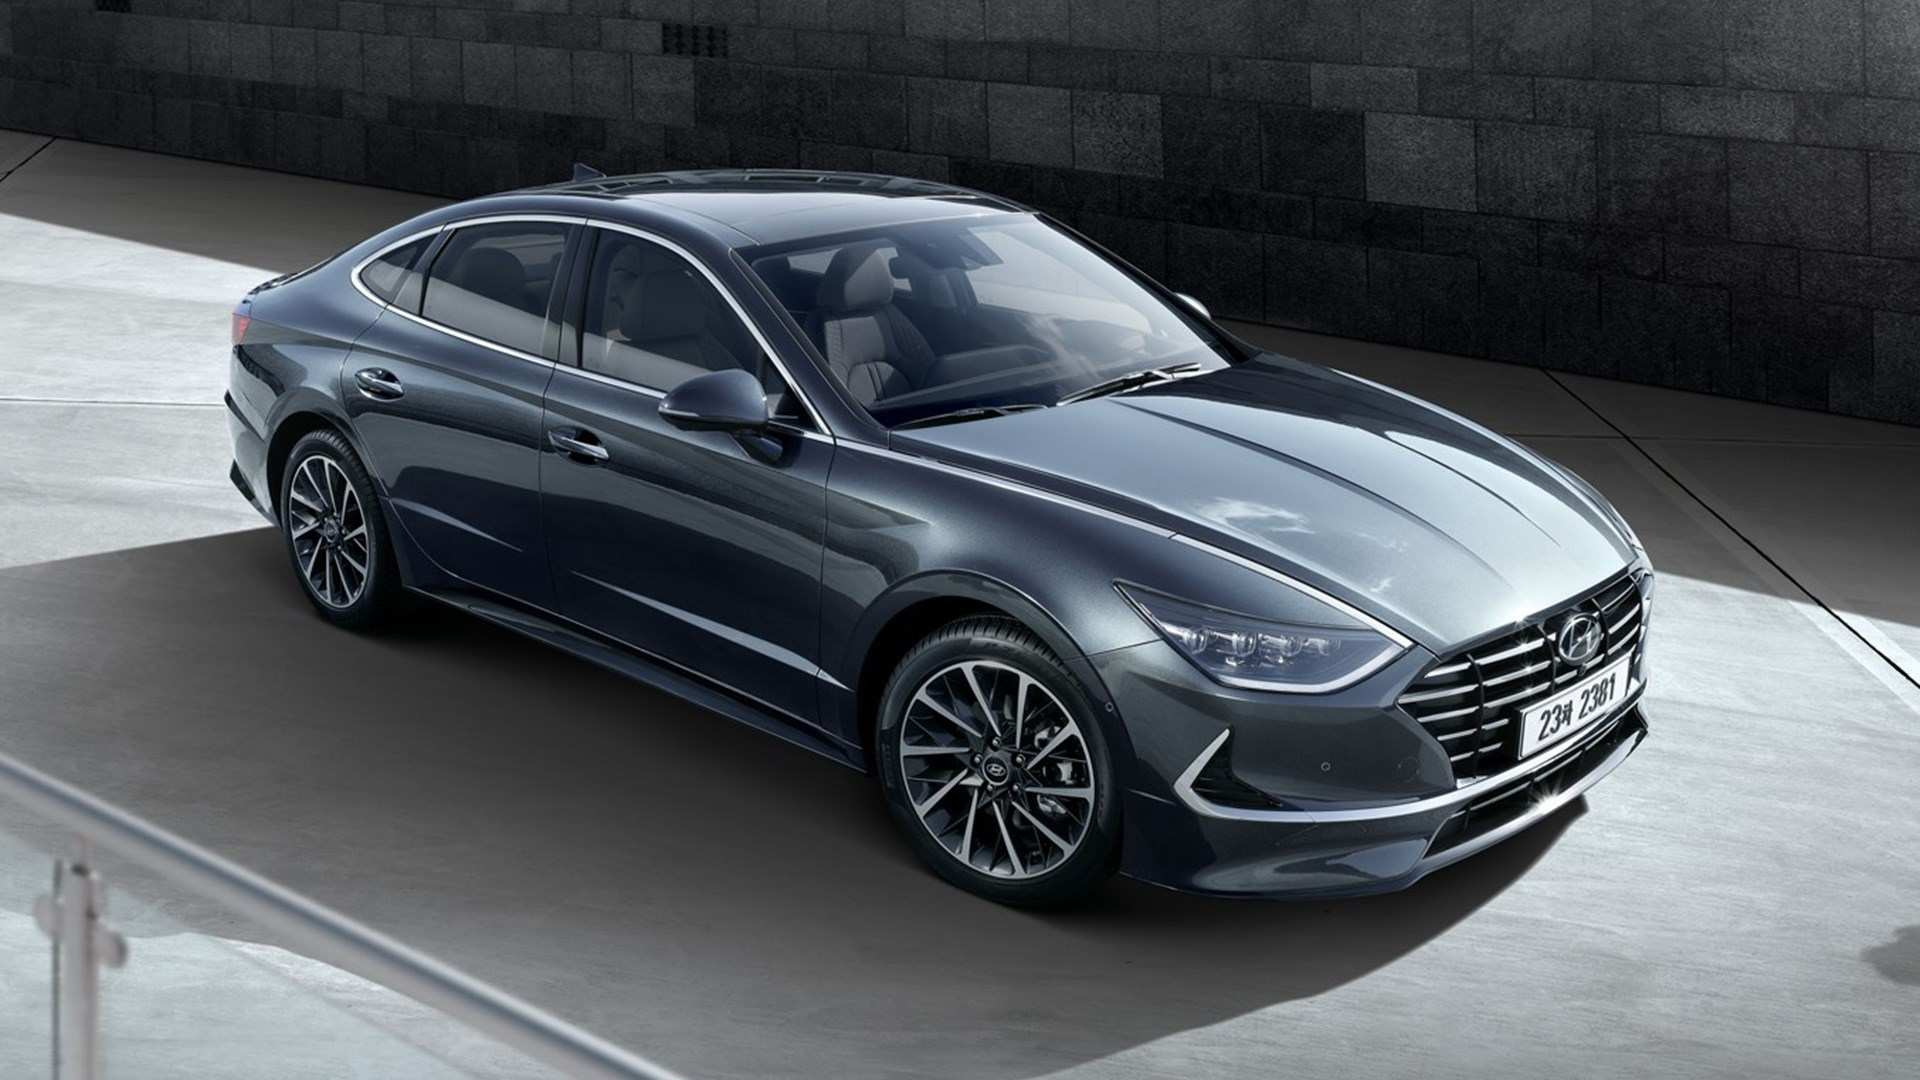 30 Concept of When Do 2020 Hyundai Cars Come Out Redesign and Concept with When Do 2020 Hyundai Cars Come Out